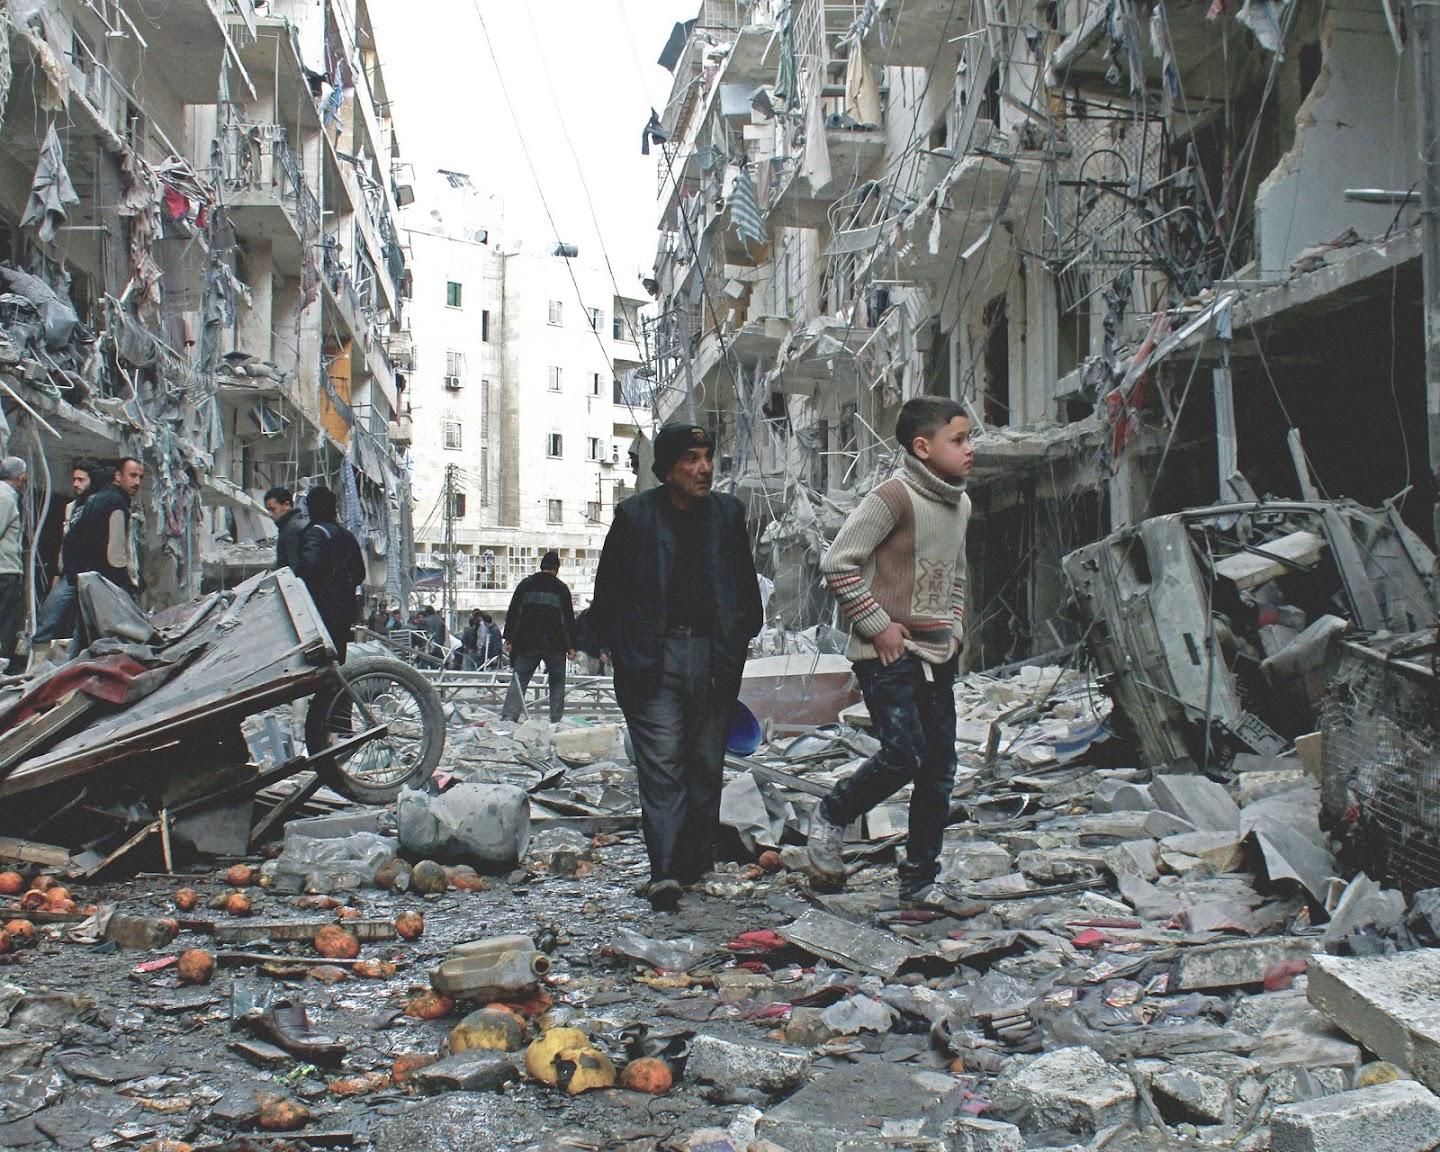 An older man and young boy walking on a ravaged city street with destroyed buildings all around